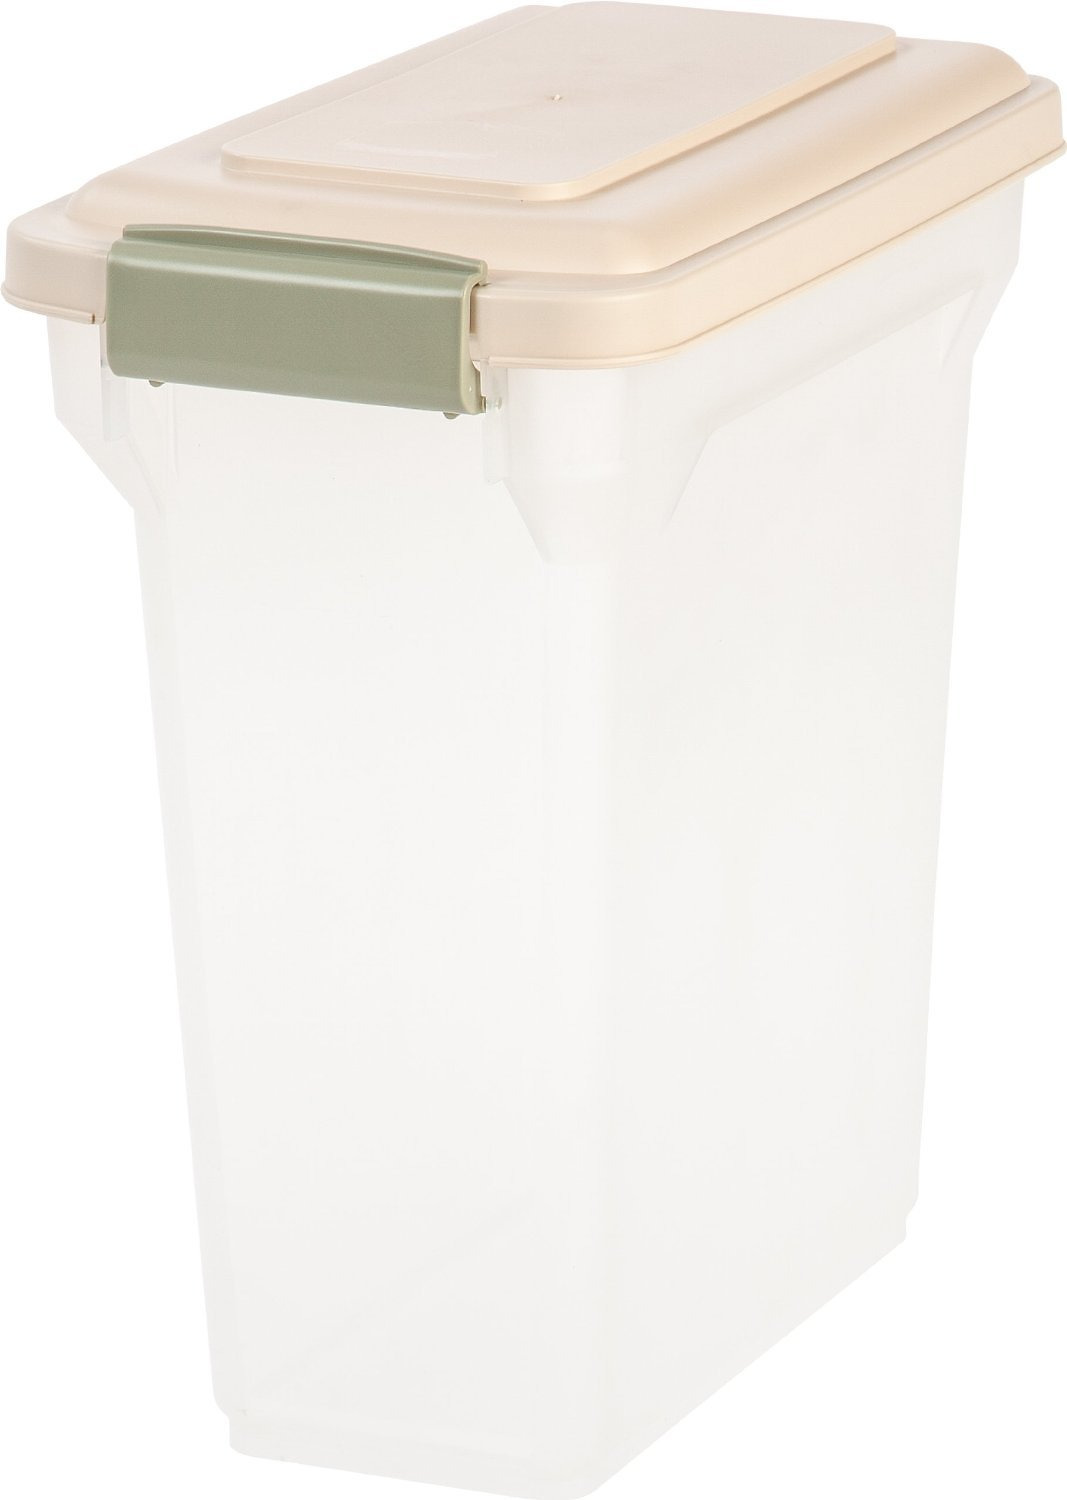 Iris 55 Qt Pet Food Container Best Of Iris Airtight Pet Food Storage Container Clear Almond 15 Qt